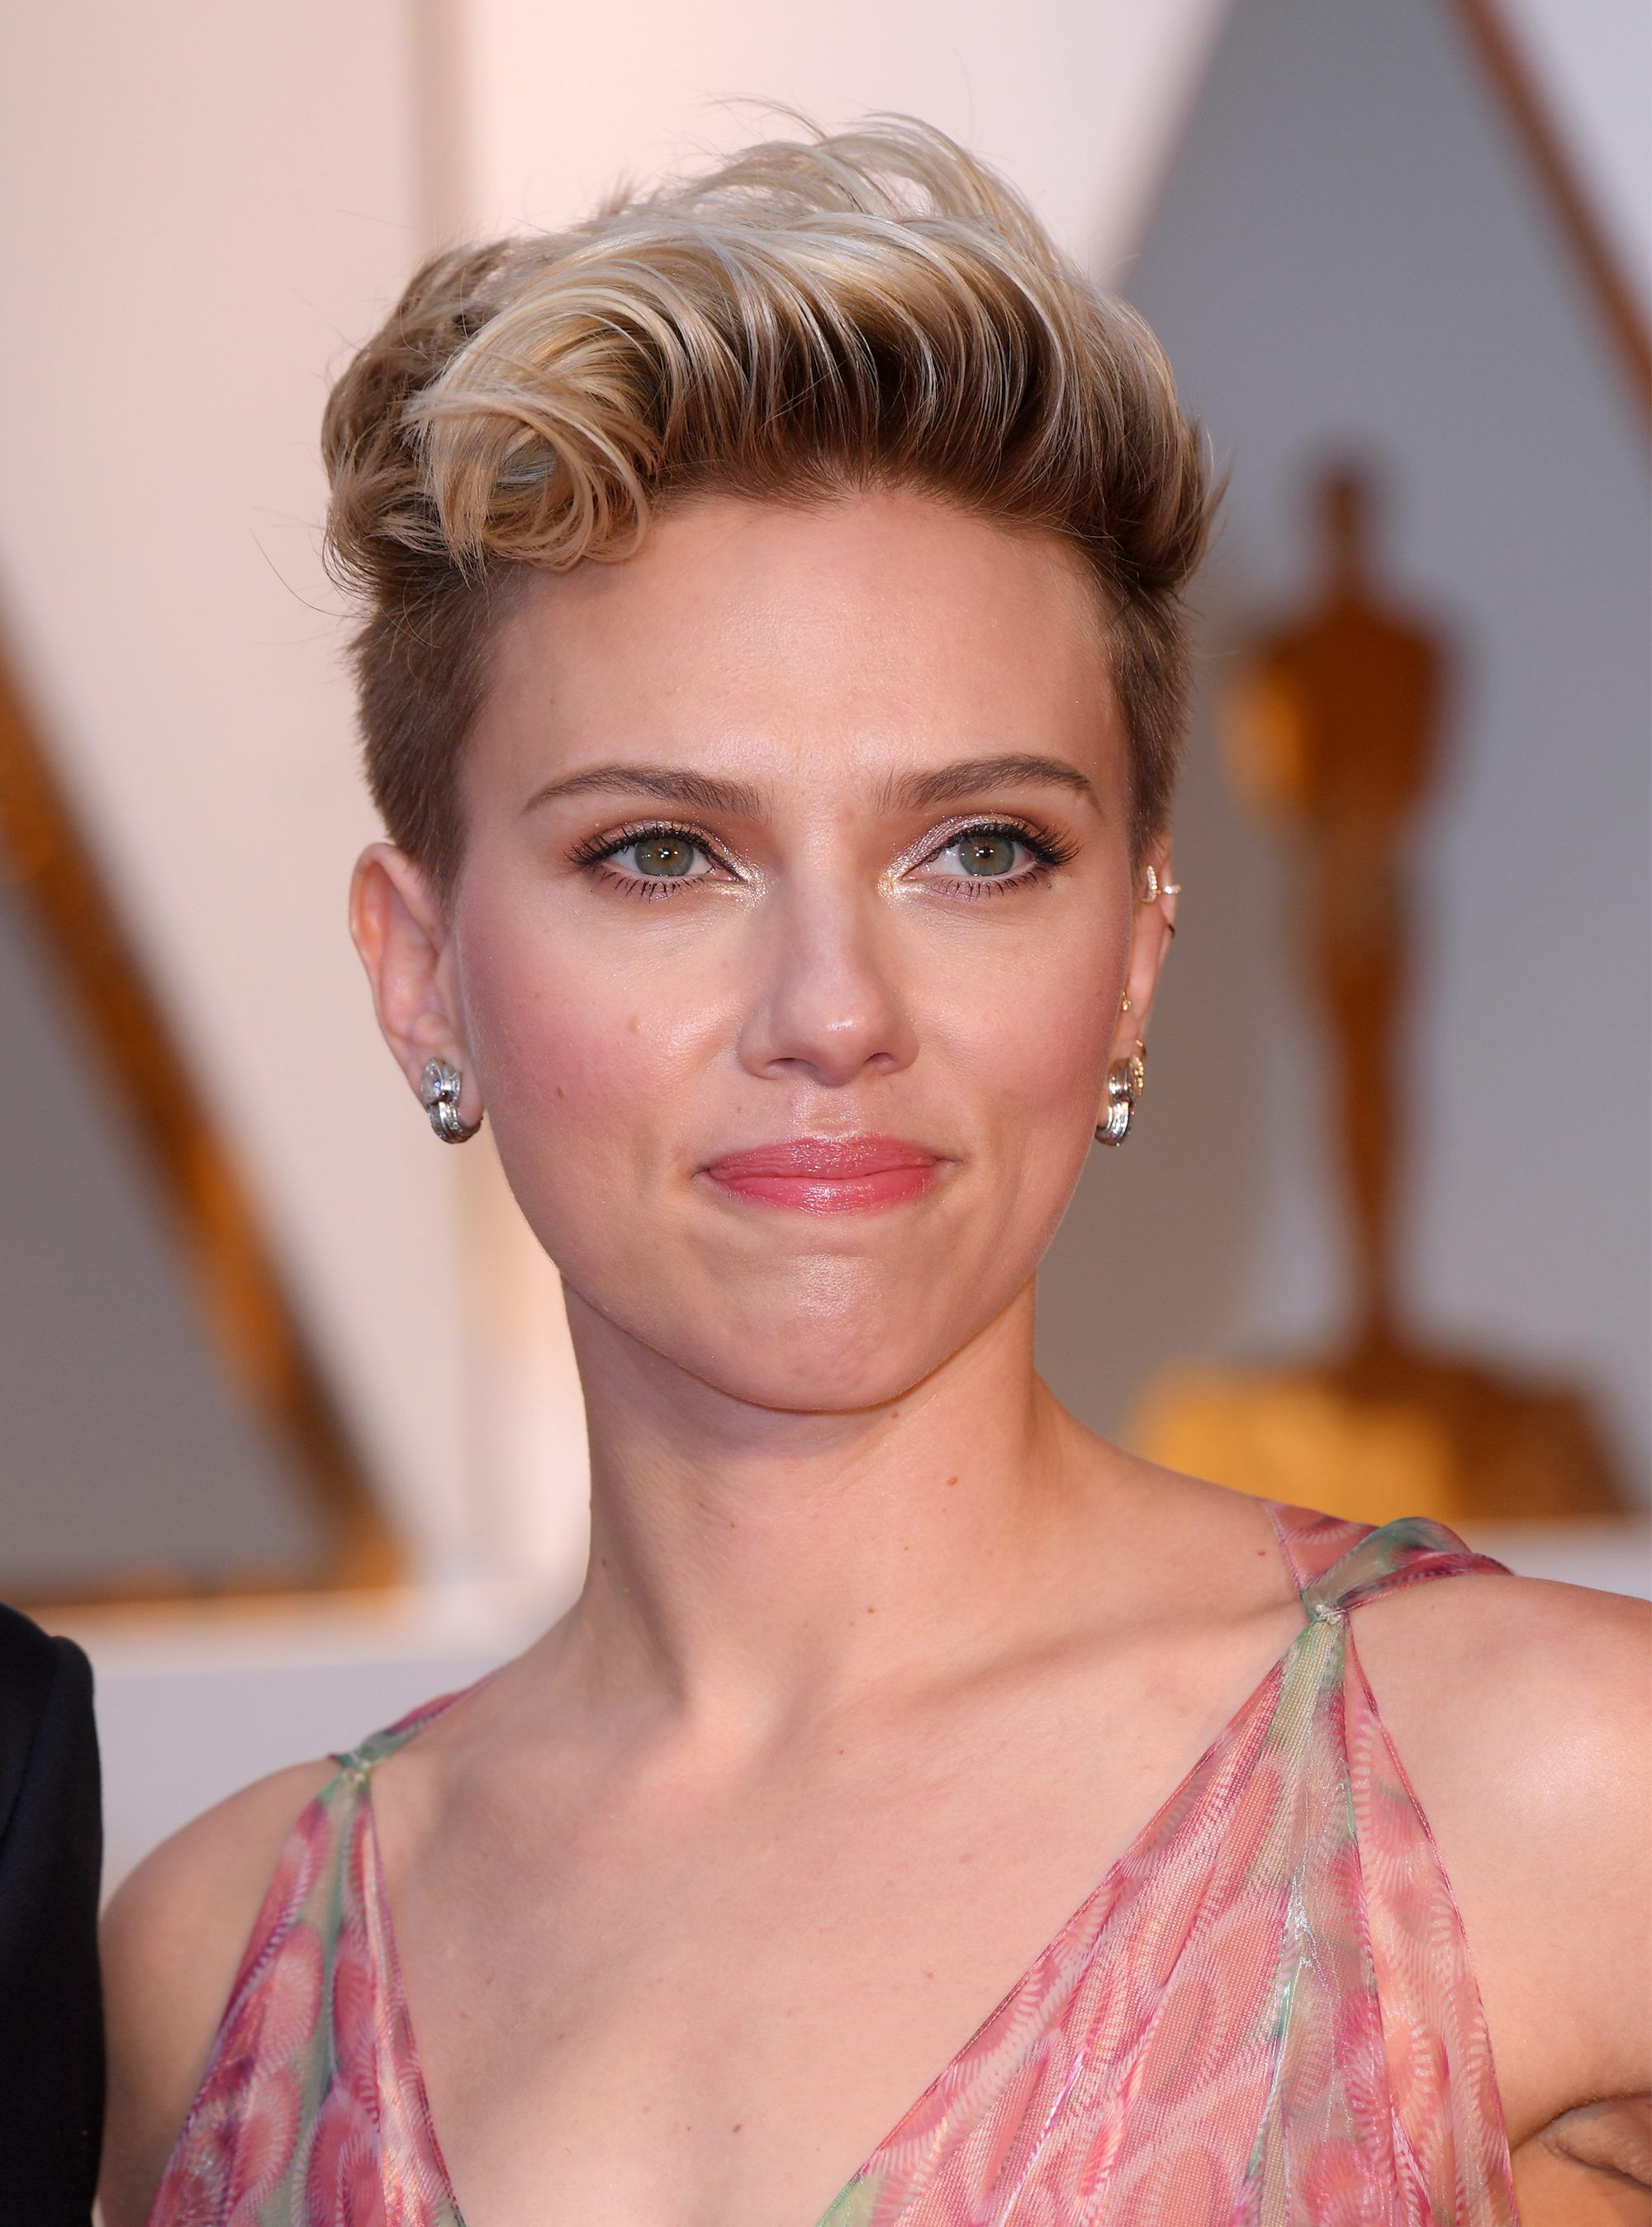 Red Carpet Hairstyles For Short Hair #carpet #hairstyles  #hairstylesforshorthair #short   Short hair styles, Short hair trends,  Woman face makeup